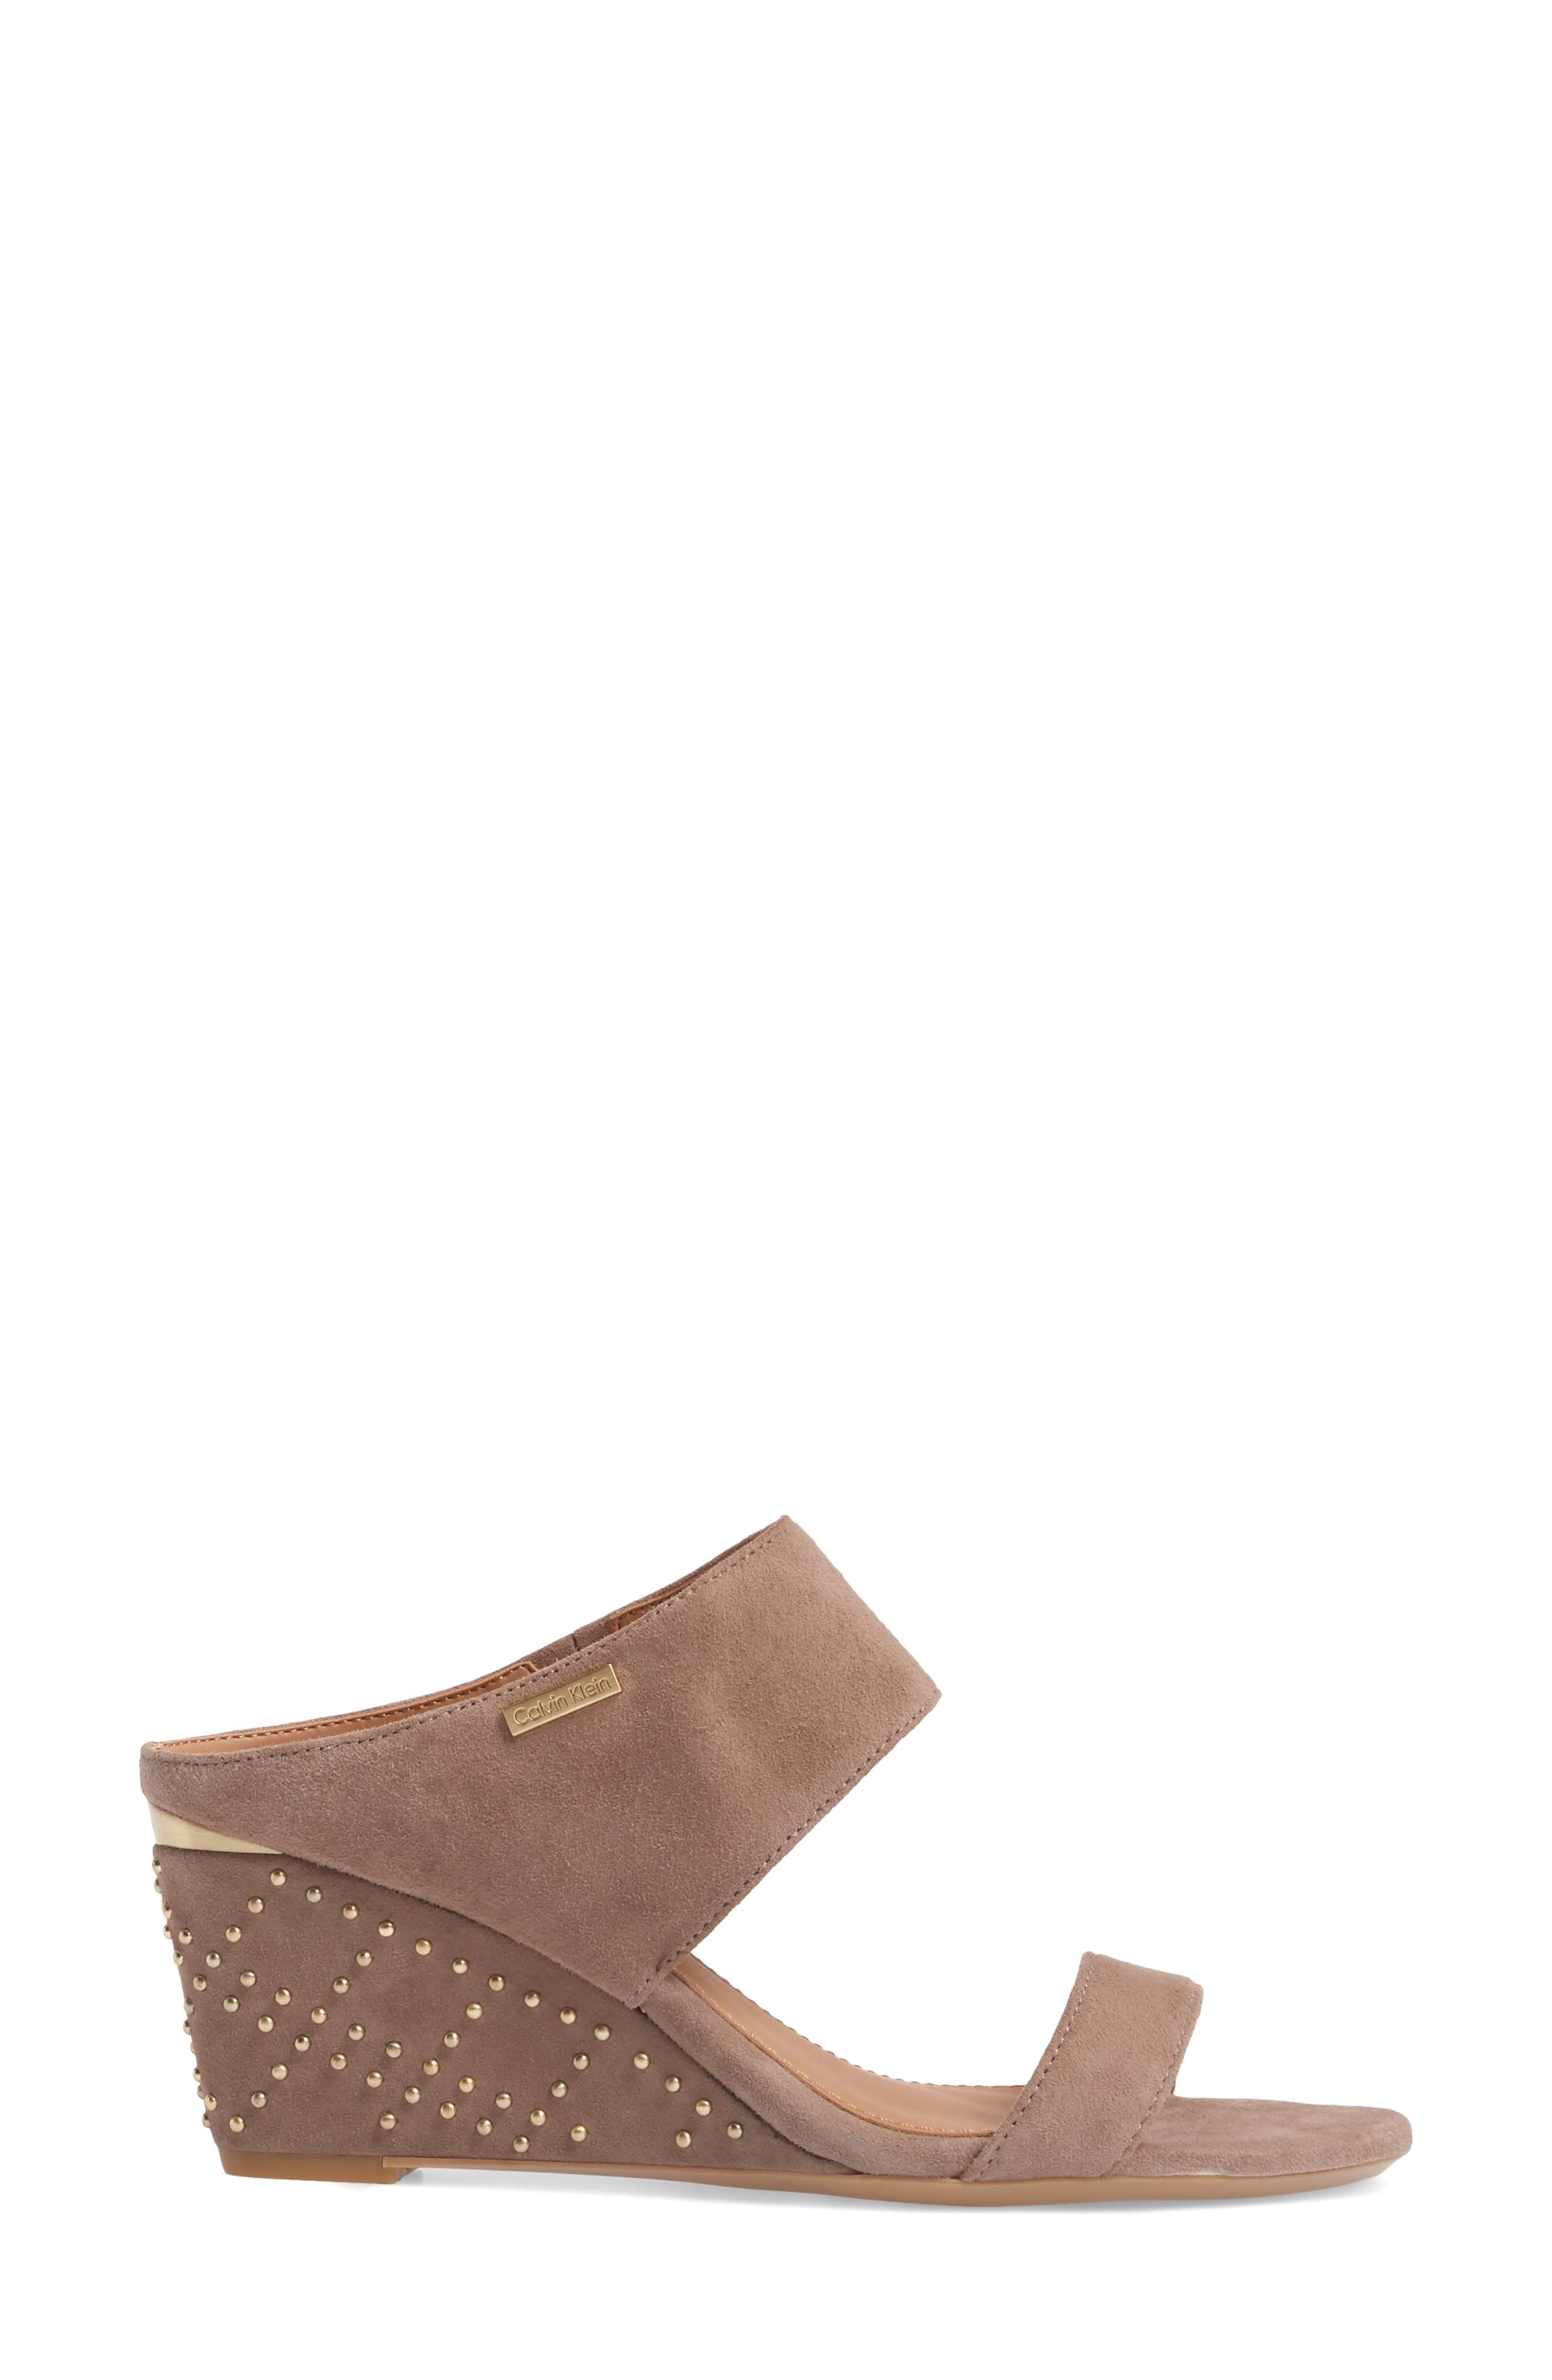 Phyllis Studded Wedge Sandal,                             Alternate thumbnail 3, color,                             Winter Taupe Suede